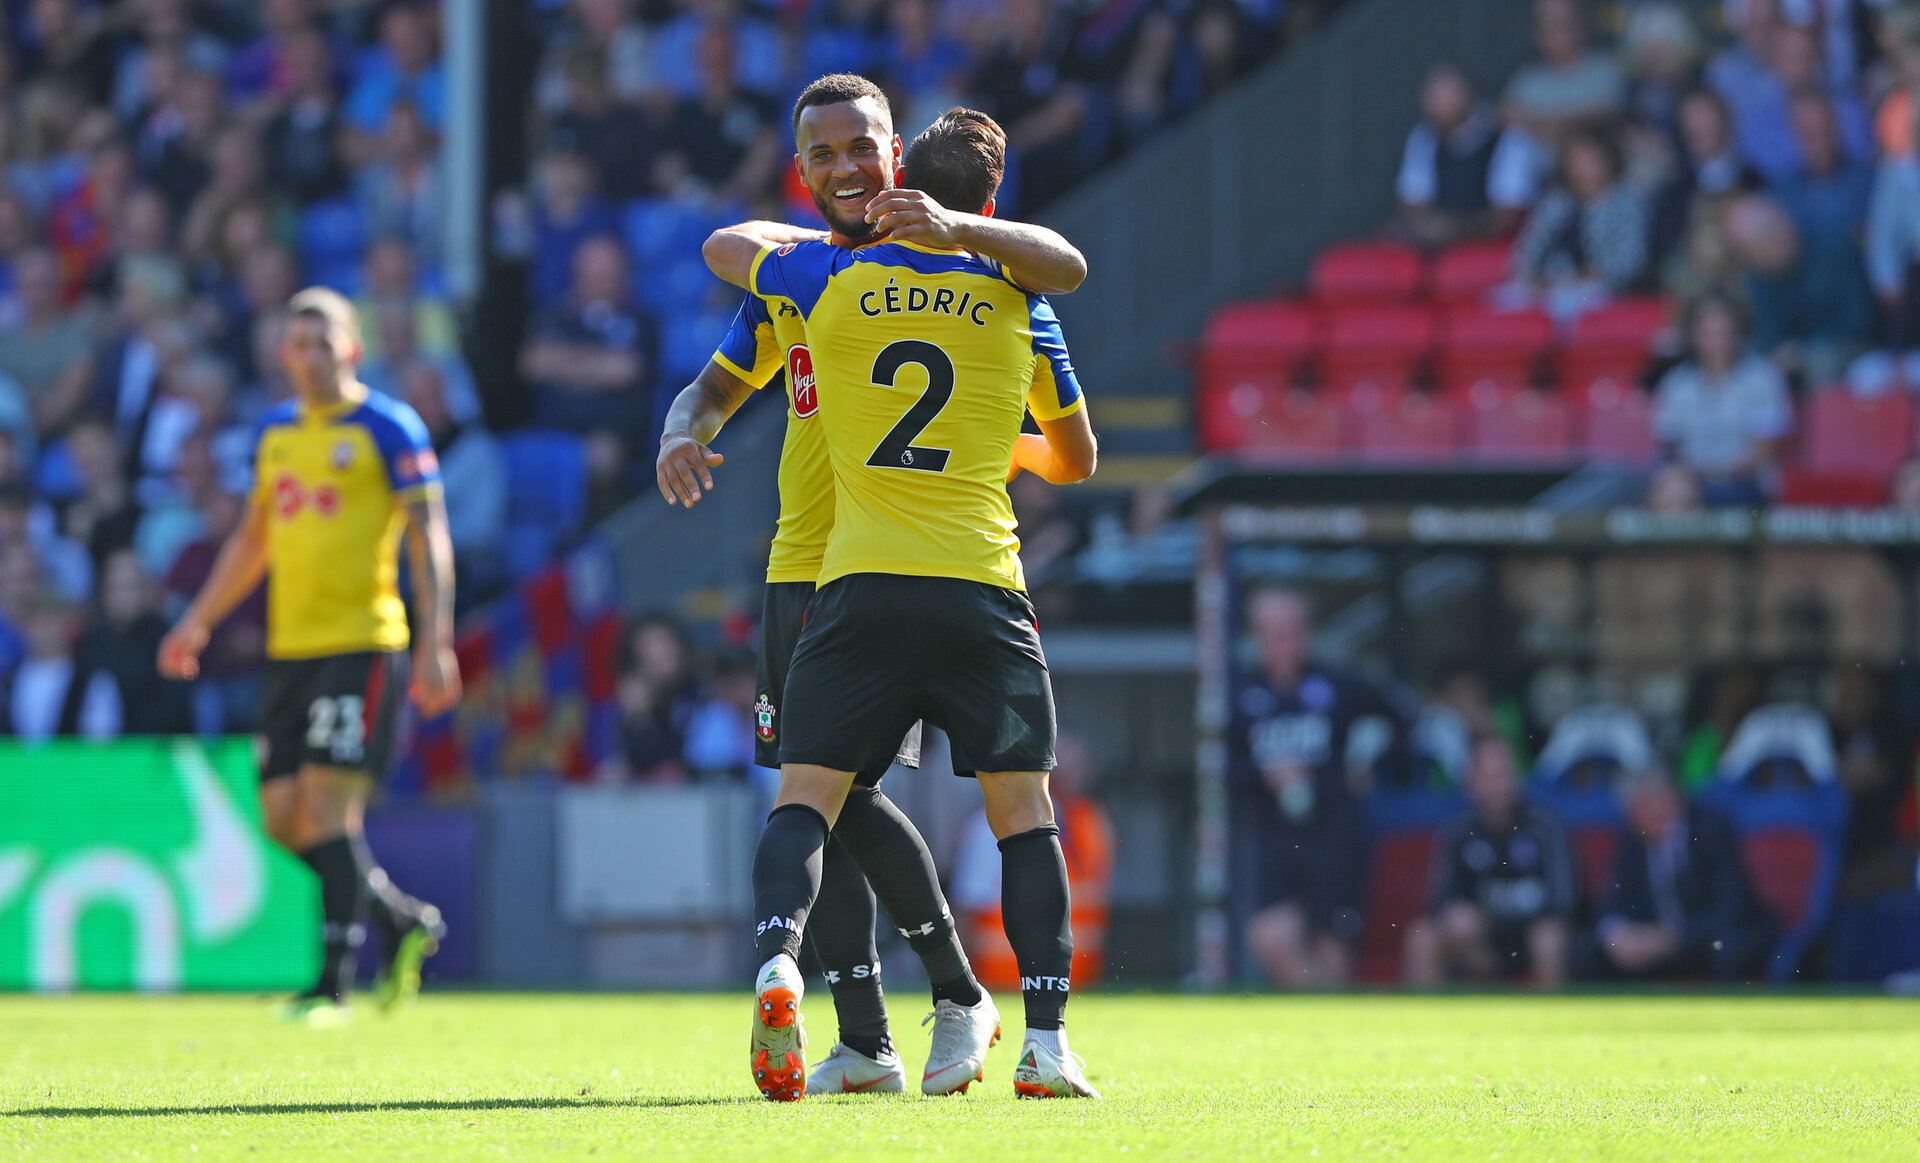 LONDON, ENGLAND - SEPTEMBER 01: Ryan Bertrand and Cedric of Southampton during the Premier League match between Crystal Palace and Southampton FC at Selhurst Park on September 1, 2018 in London, United Kingdom. (Photo by Matt Watson/Southampton FC via Getty Images)